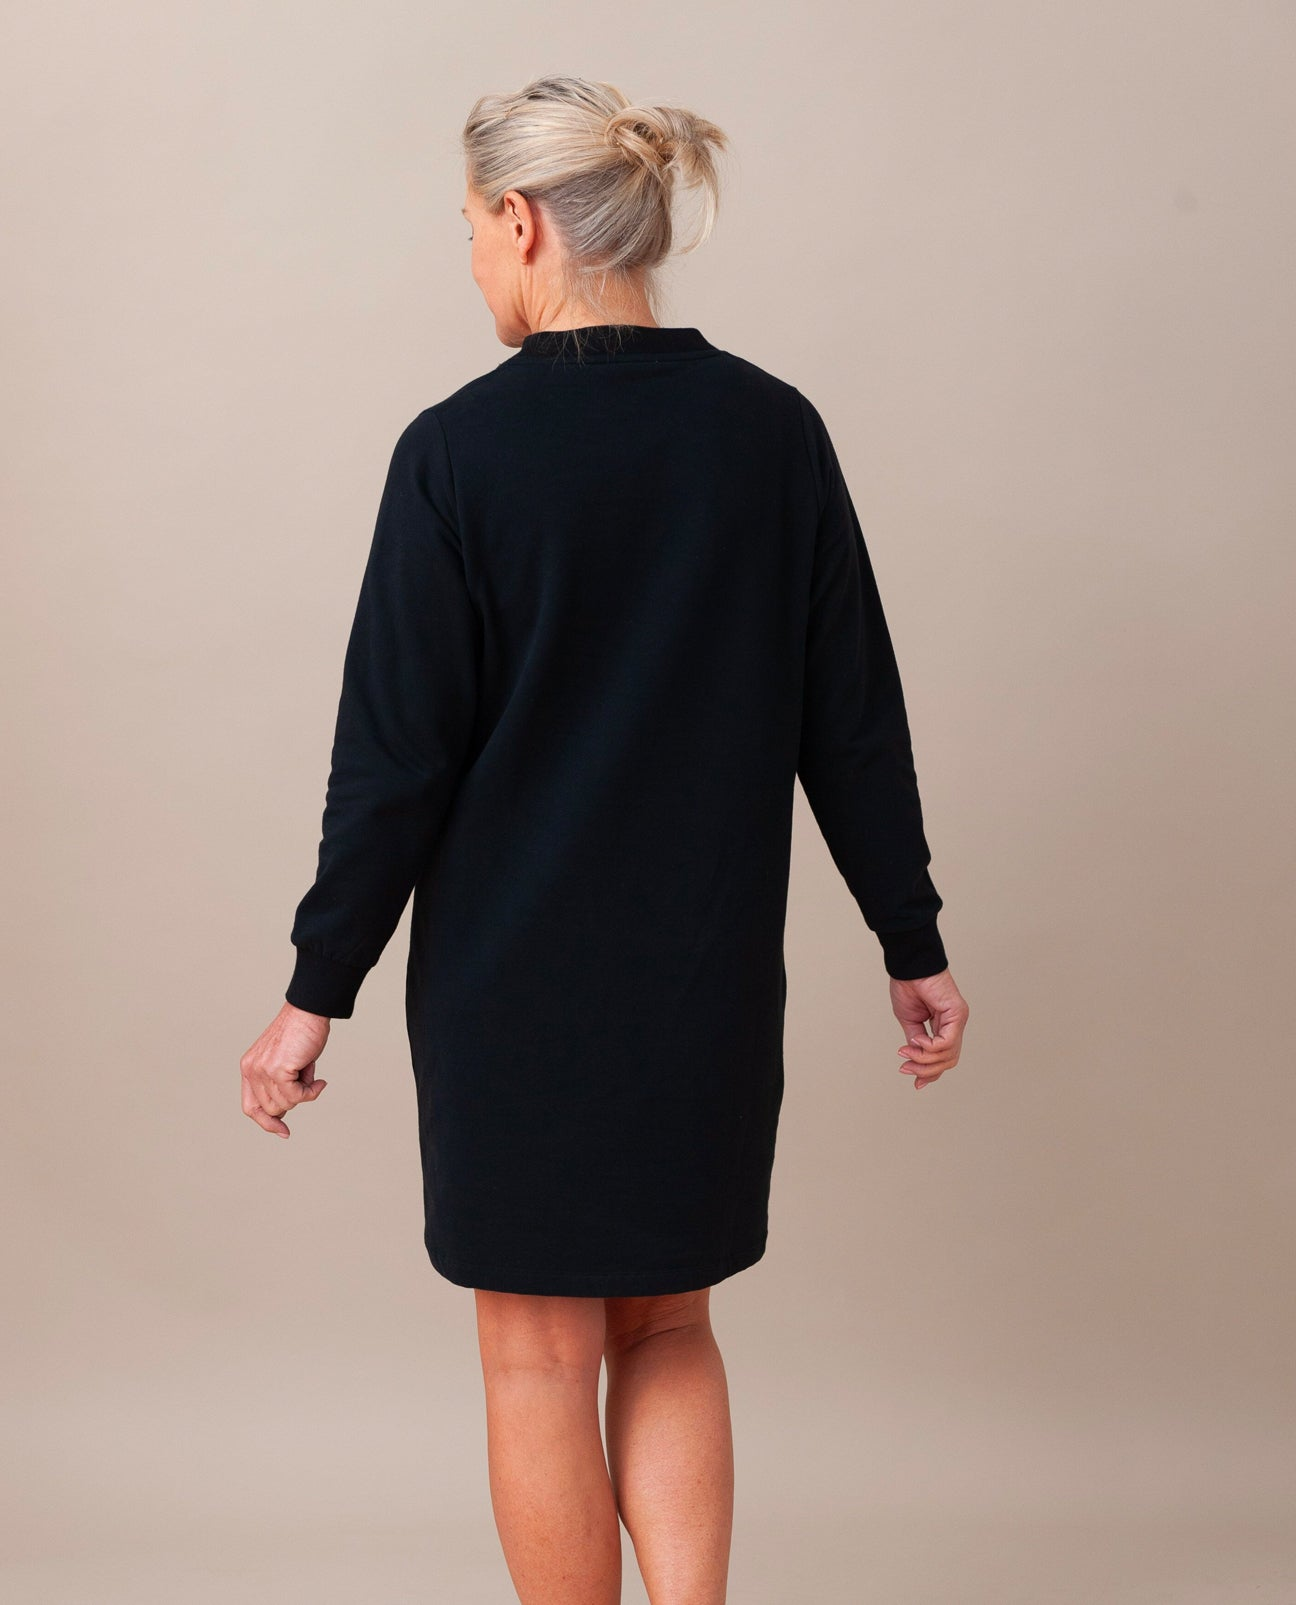 ALEXIS Organic Cotton Dress In Black